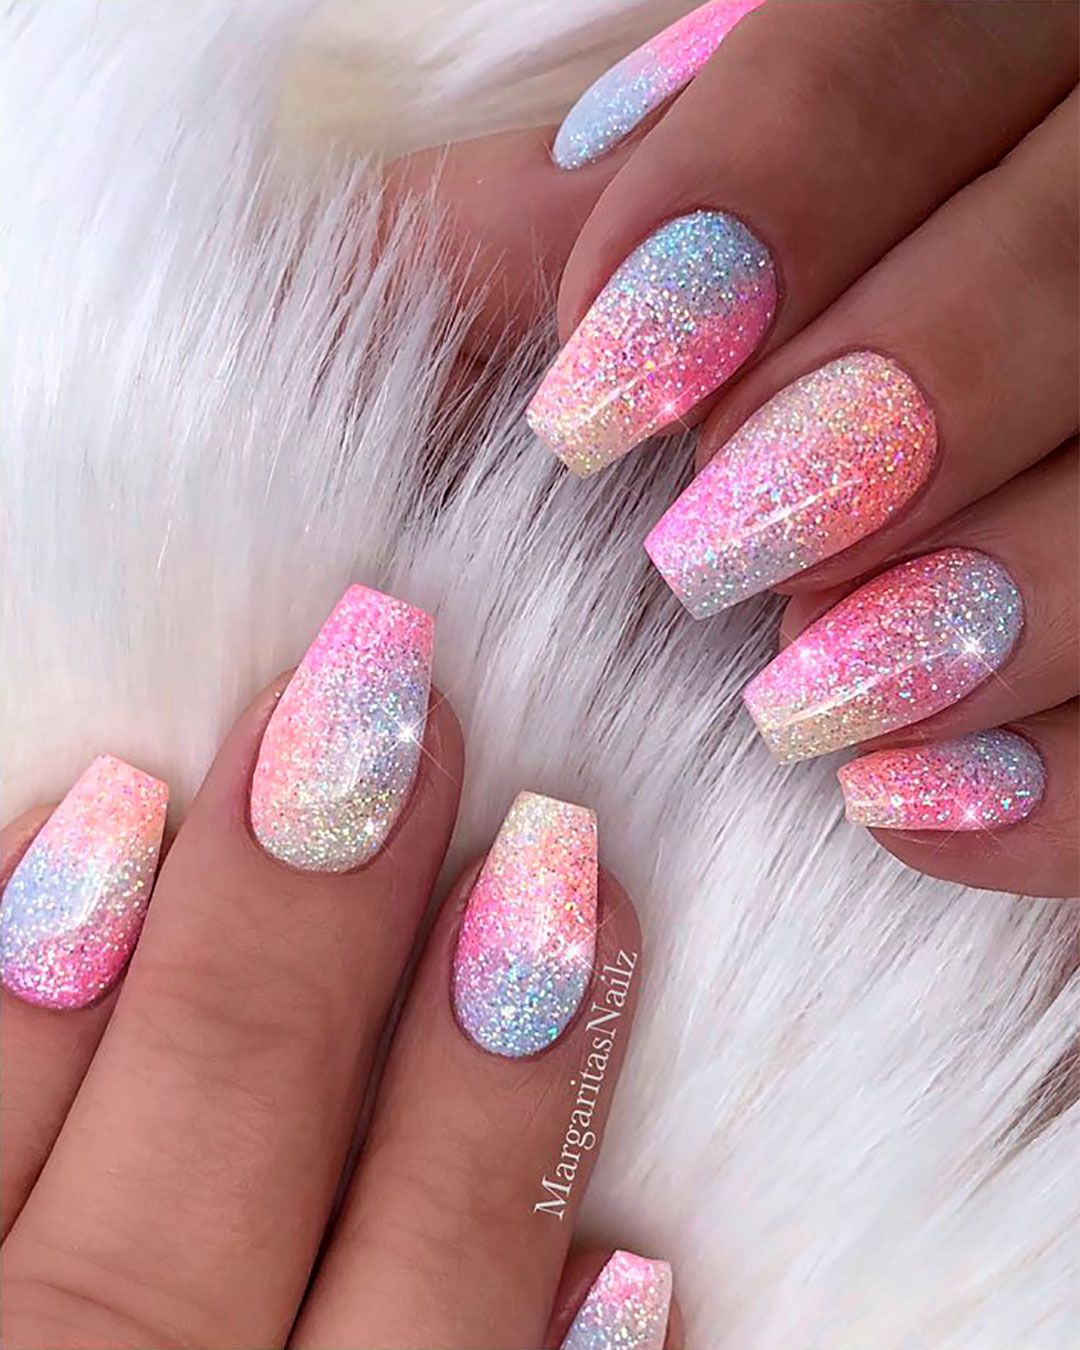 The Best Unicorn Nail Art Design Ideas \u0026 Tutorials